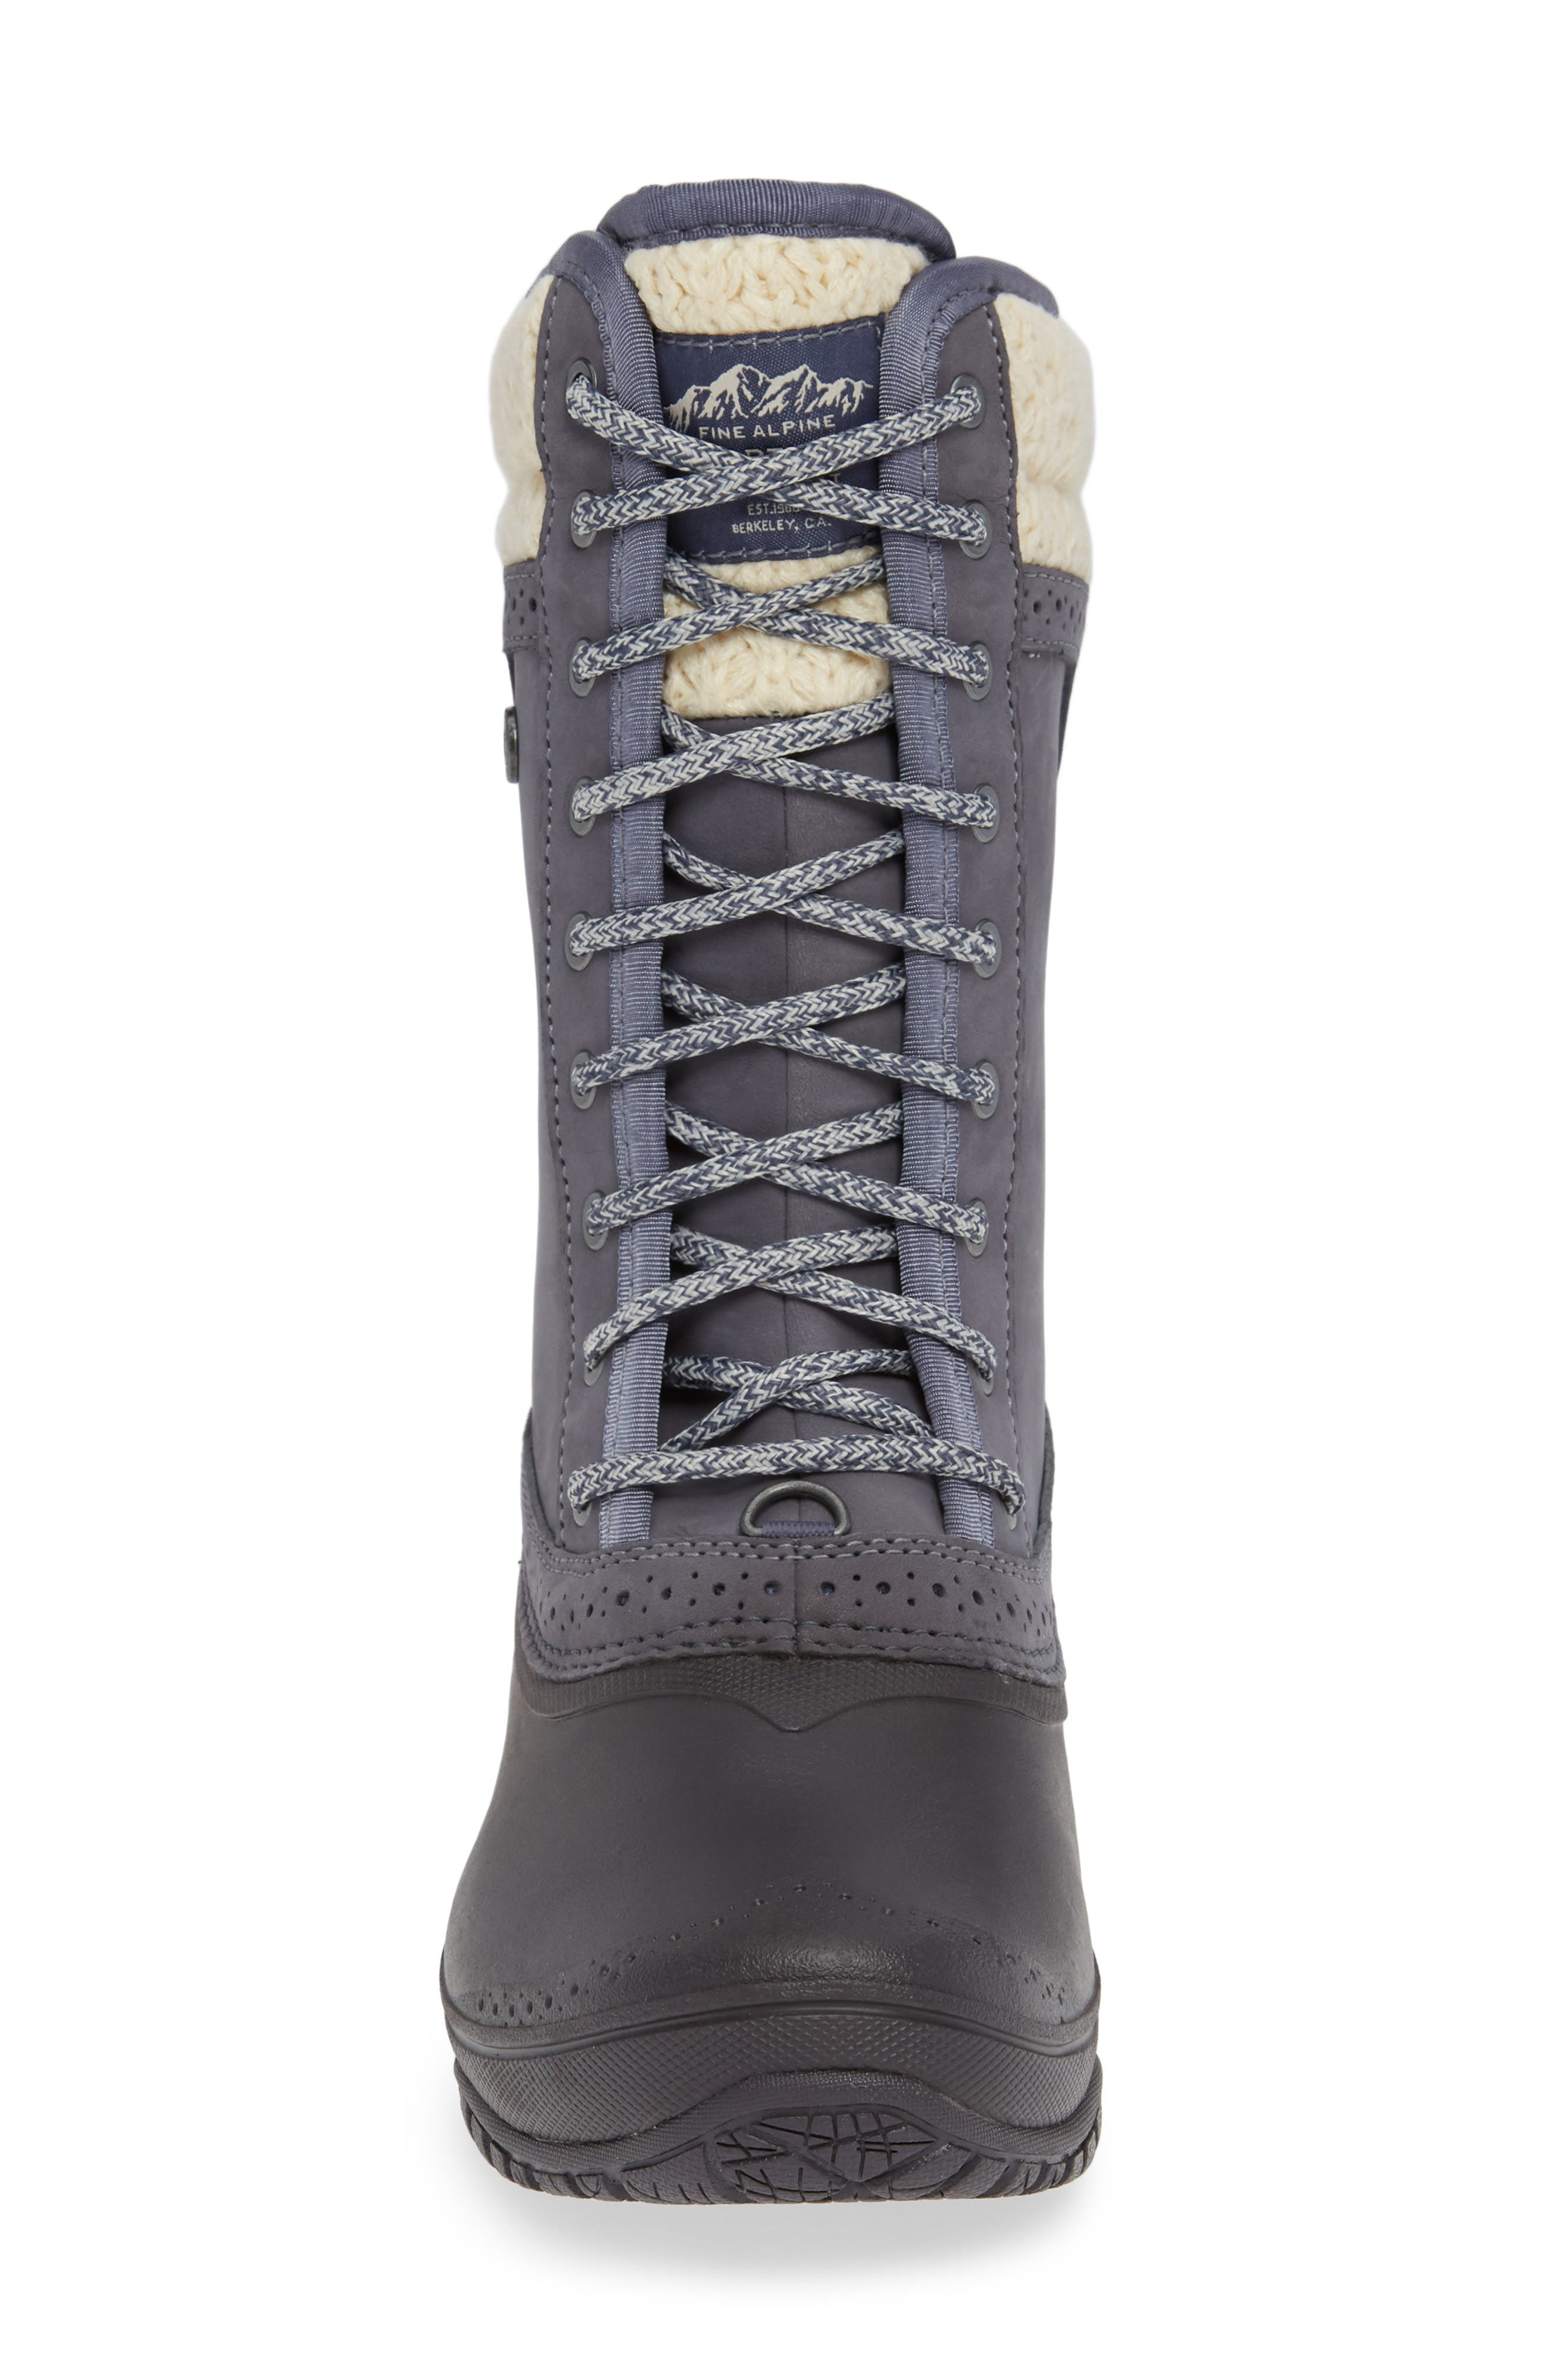 THE NORTH FACE, Shellista Waterproof Insulated Snow Boot, Alternate thumbnail 4, color, GRISAILLE GREY/ VINTAGE WHITE